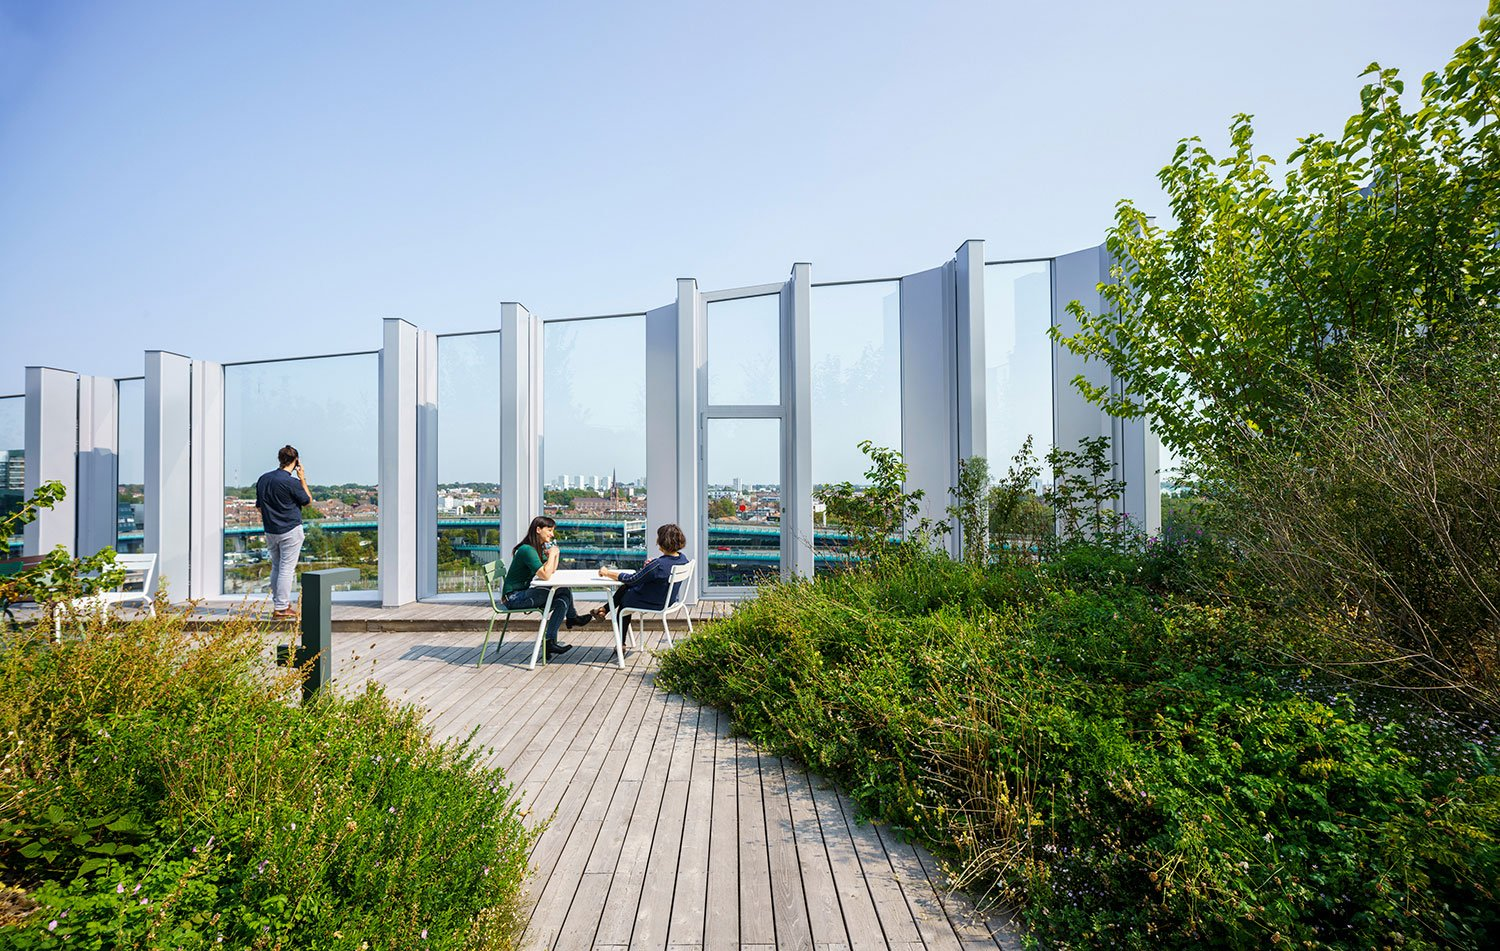 The 5.500m2 green roof is home to 65 species of plants, trees, shrubs, and perennials © Javier Callejas Sevilla